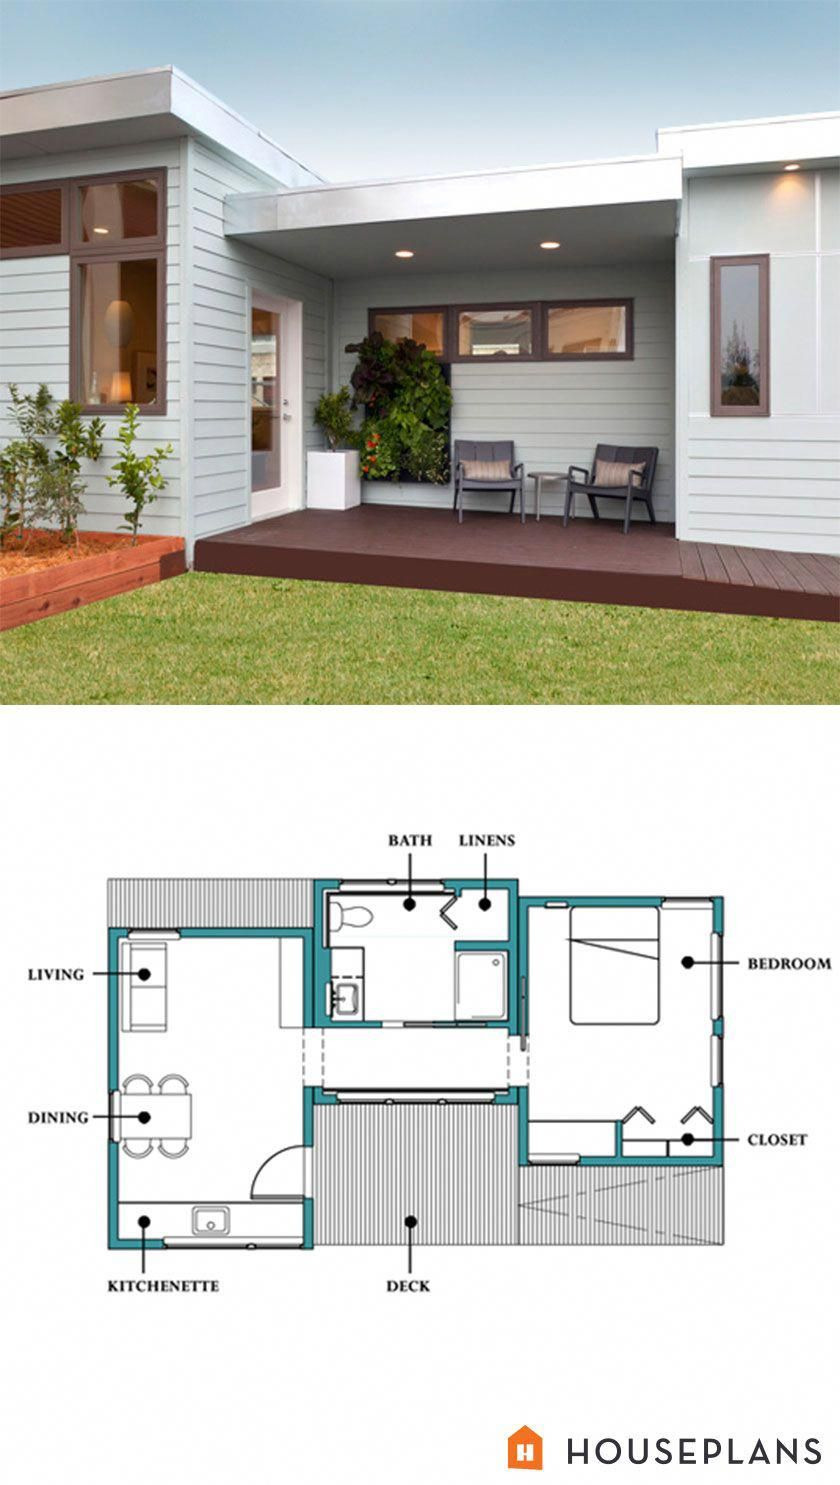 Small One Bedroom House Plans Fresh Small Modern In Law Cottage 500sft 1 Bedroom 1 Bathroom by